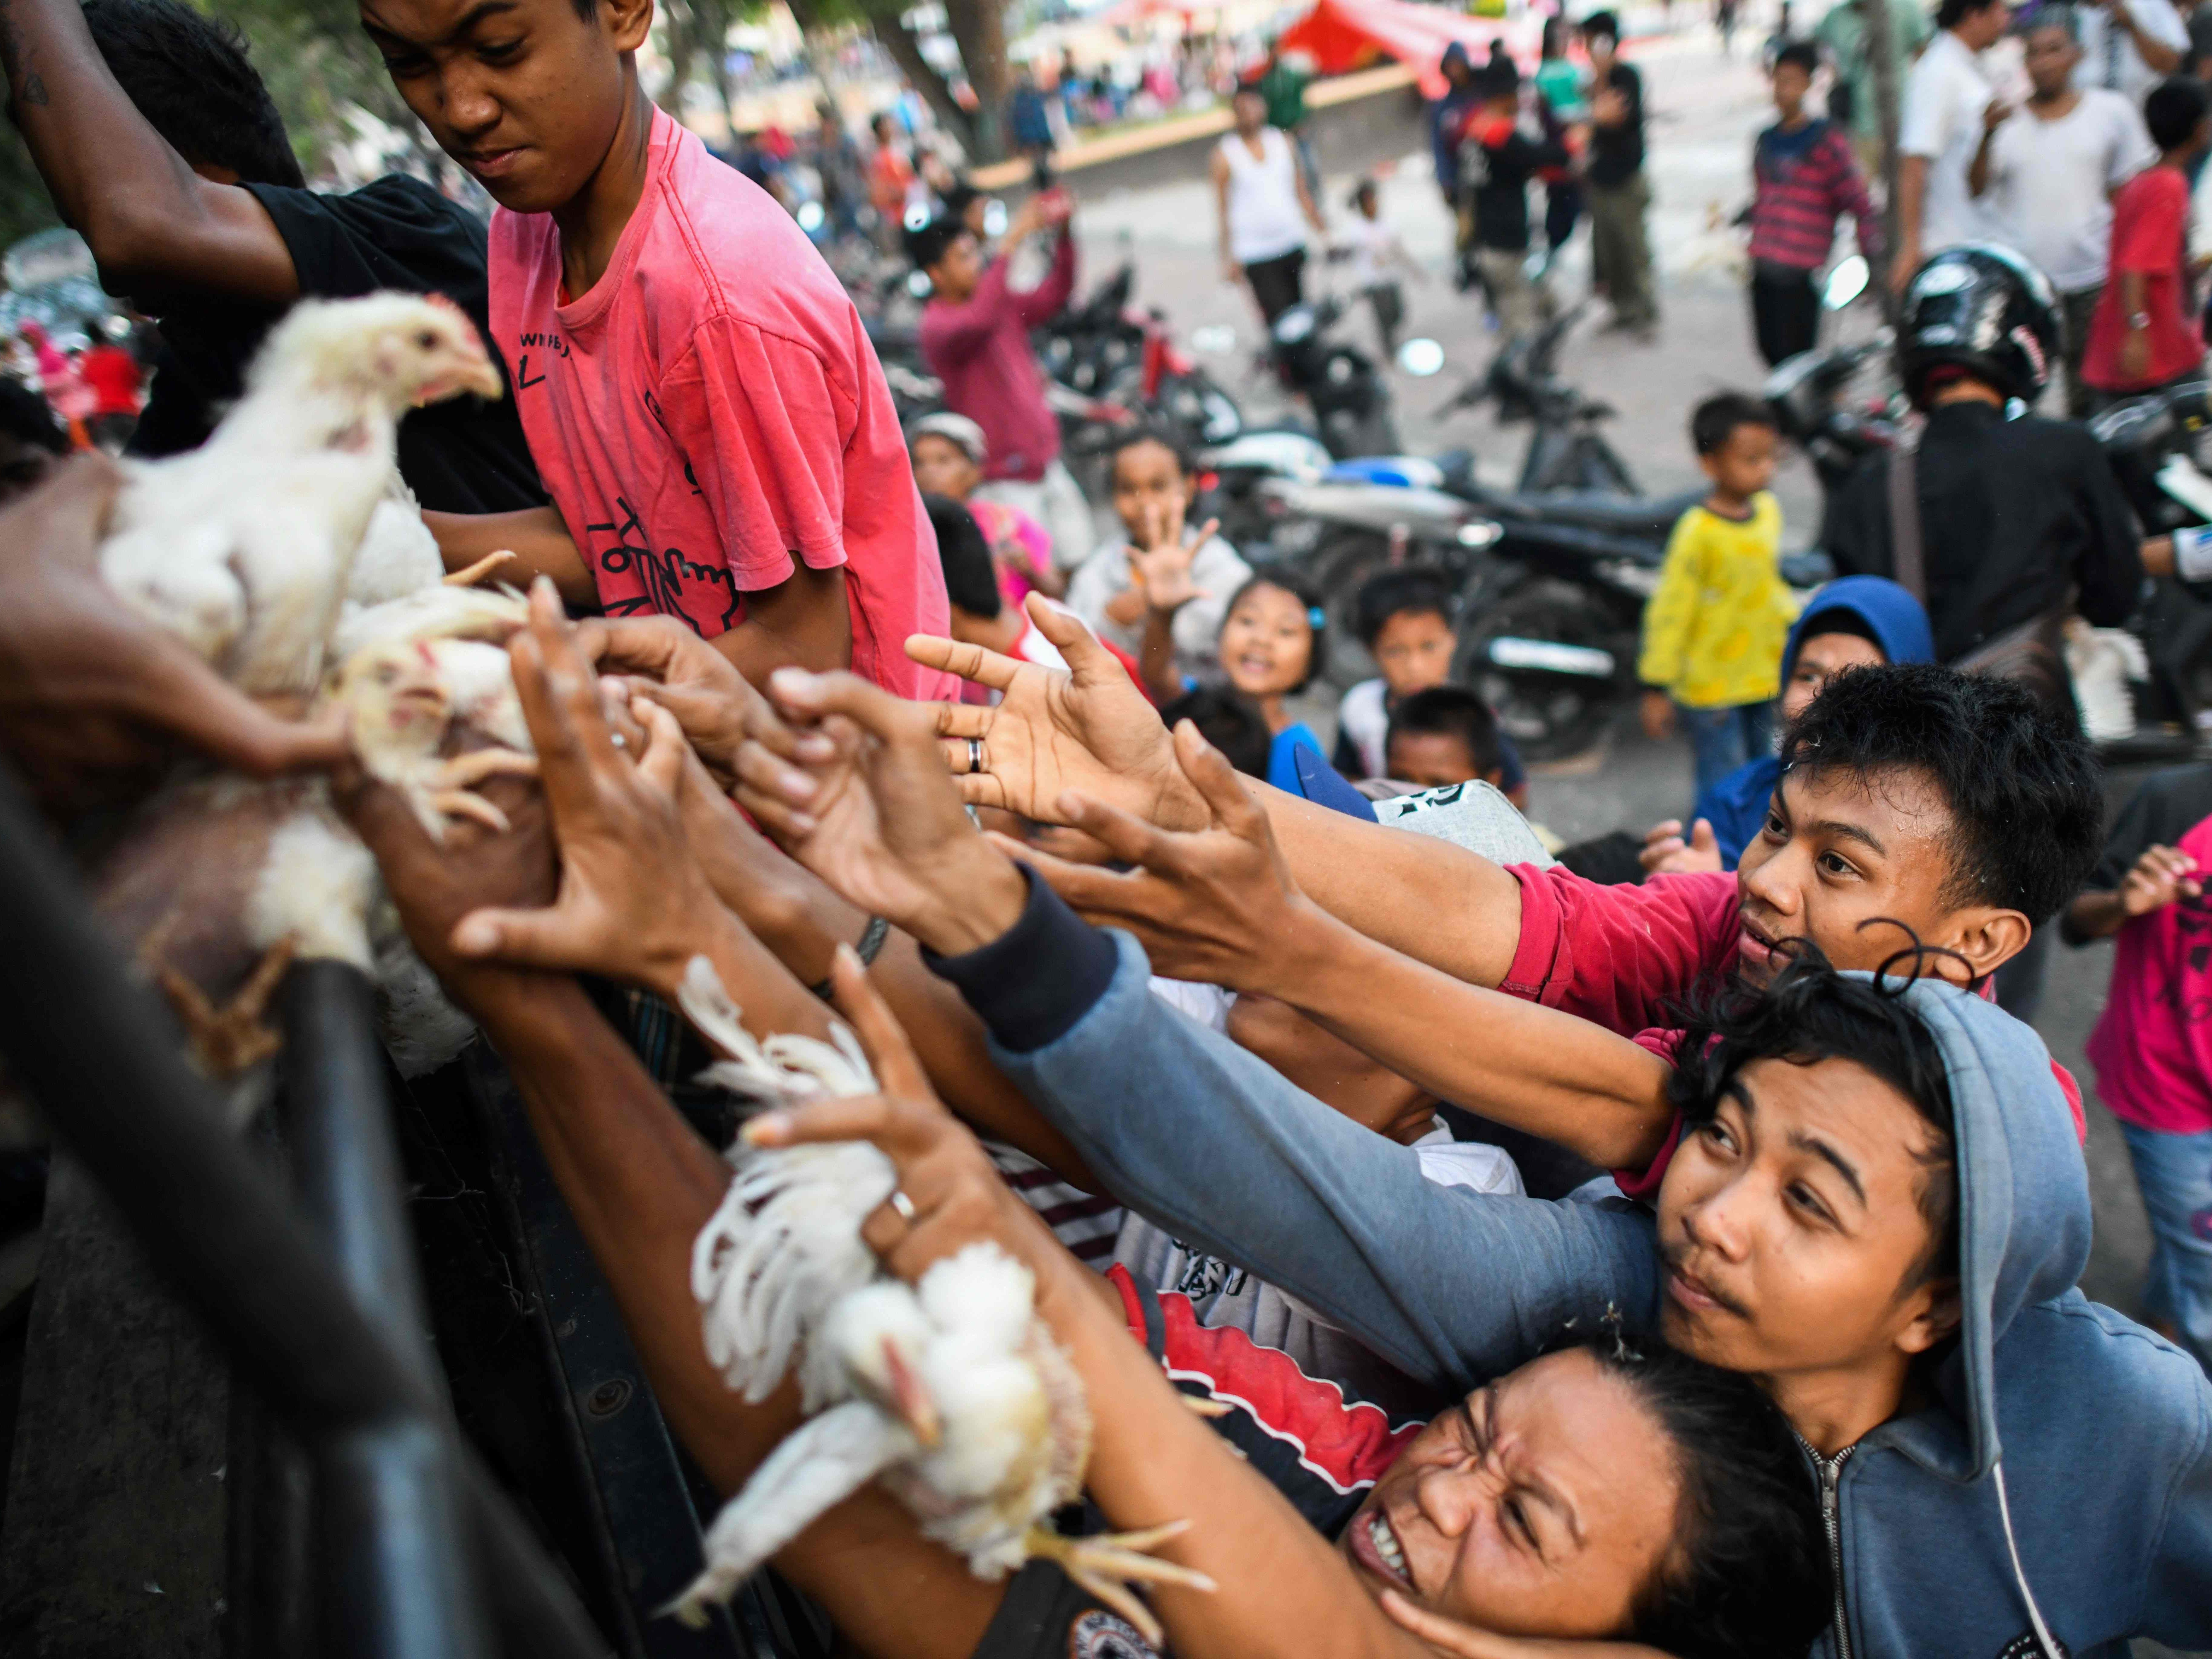 Earthquake survivors scuffle to get live chickens being distributed from a police truck outside a makeshift camp in Palu in Indonesia's Central Sulawesi on Oct. 2, 2018, after an earthquake and tsunami hit the area on Sept. 28. The Indonesian government said the death toll from a devastating earthquake-tsunami on the island of Sulawesi had risen to 1,234 people.